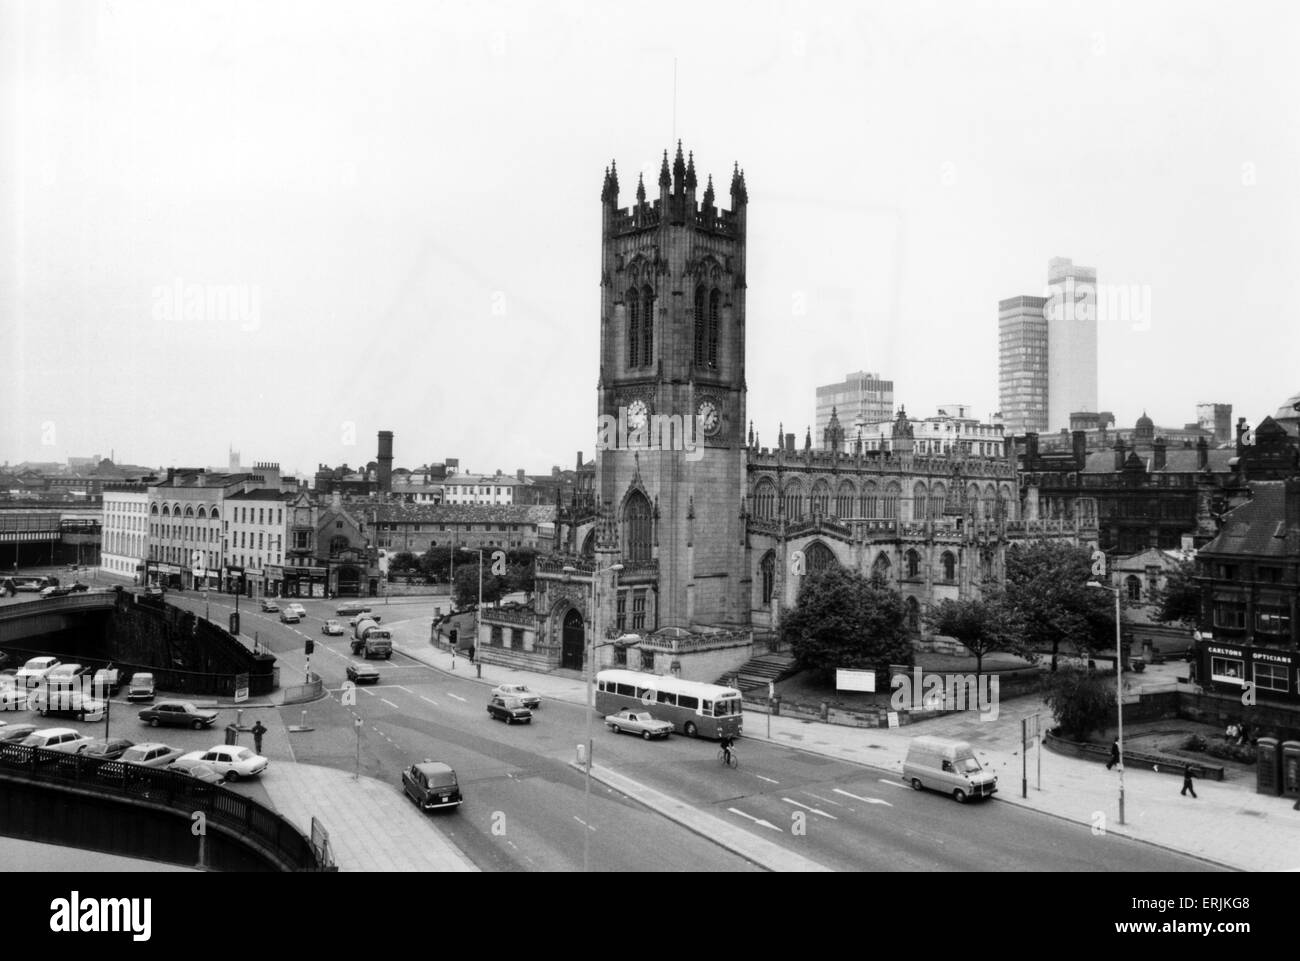 Manchester Cathedral, 21st June 1976. Manchester Cathedral is a medieval church on Victoria Street in central Manchester, - Stock Image